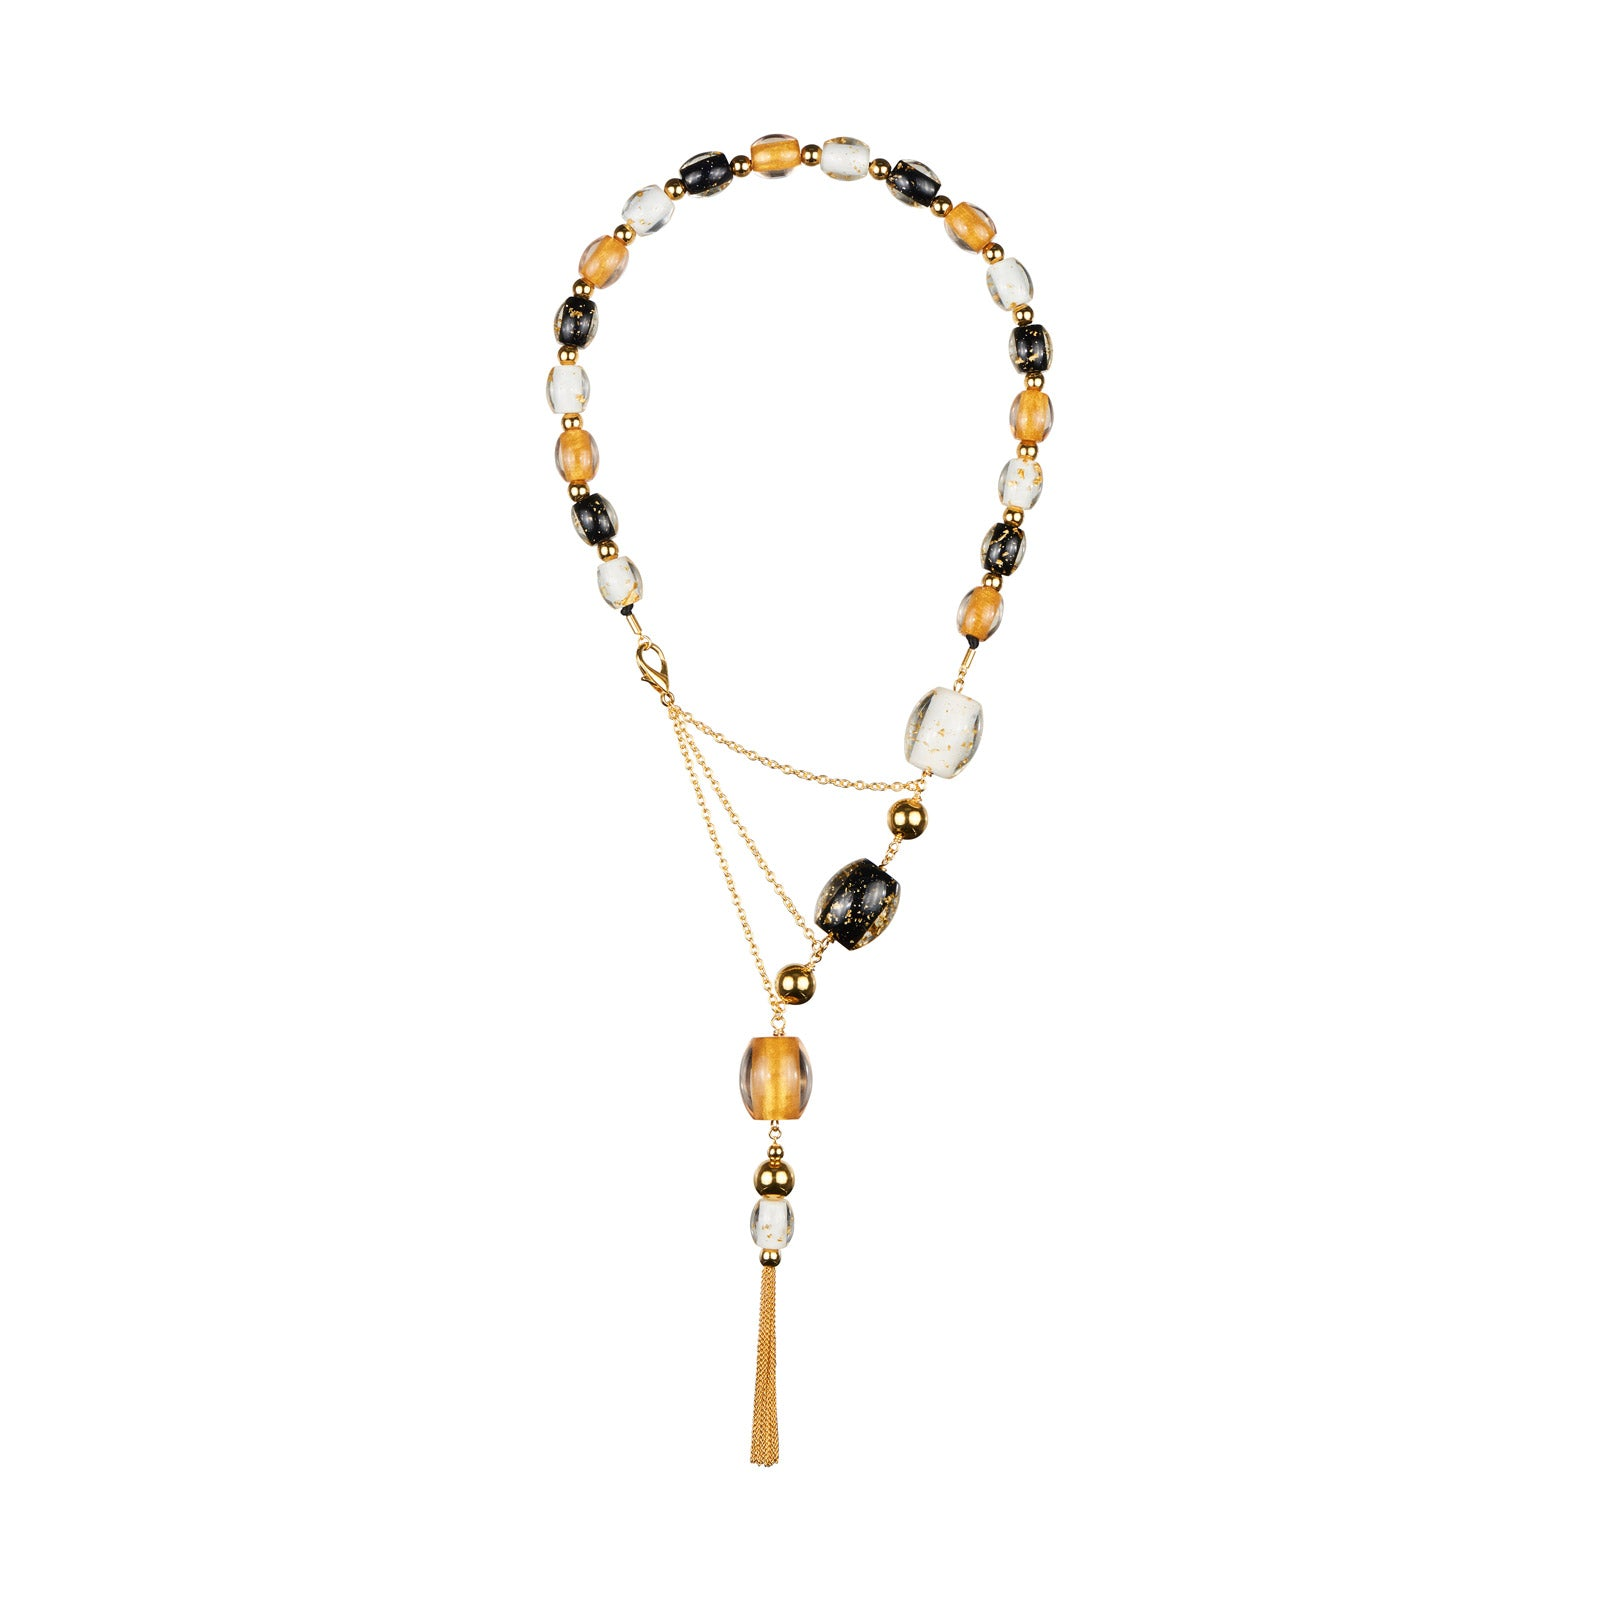 Asymmetric Statement Assorted Lucite Necklace with Tassels